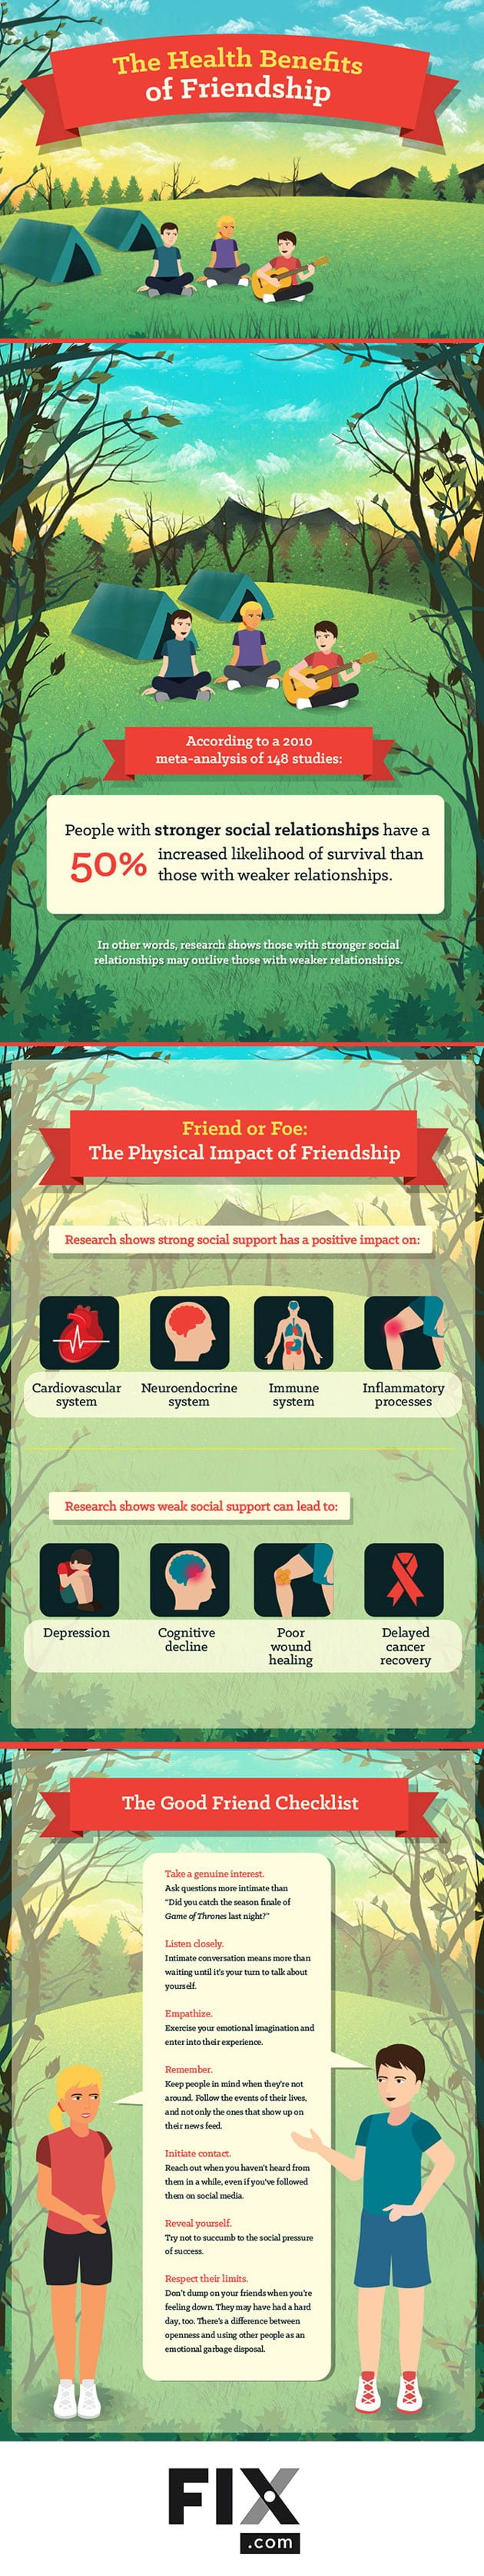 Health Benefits of Friendship Infographic